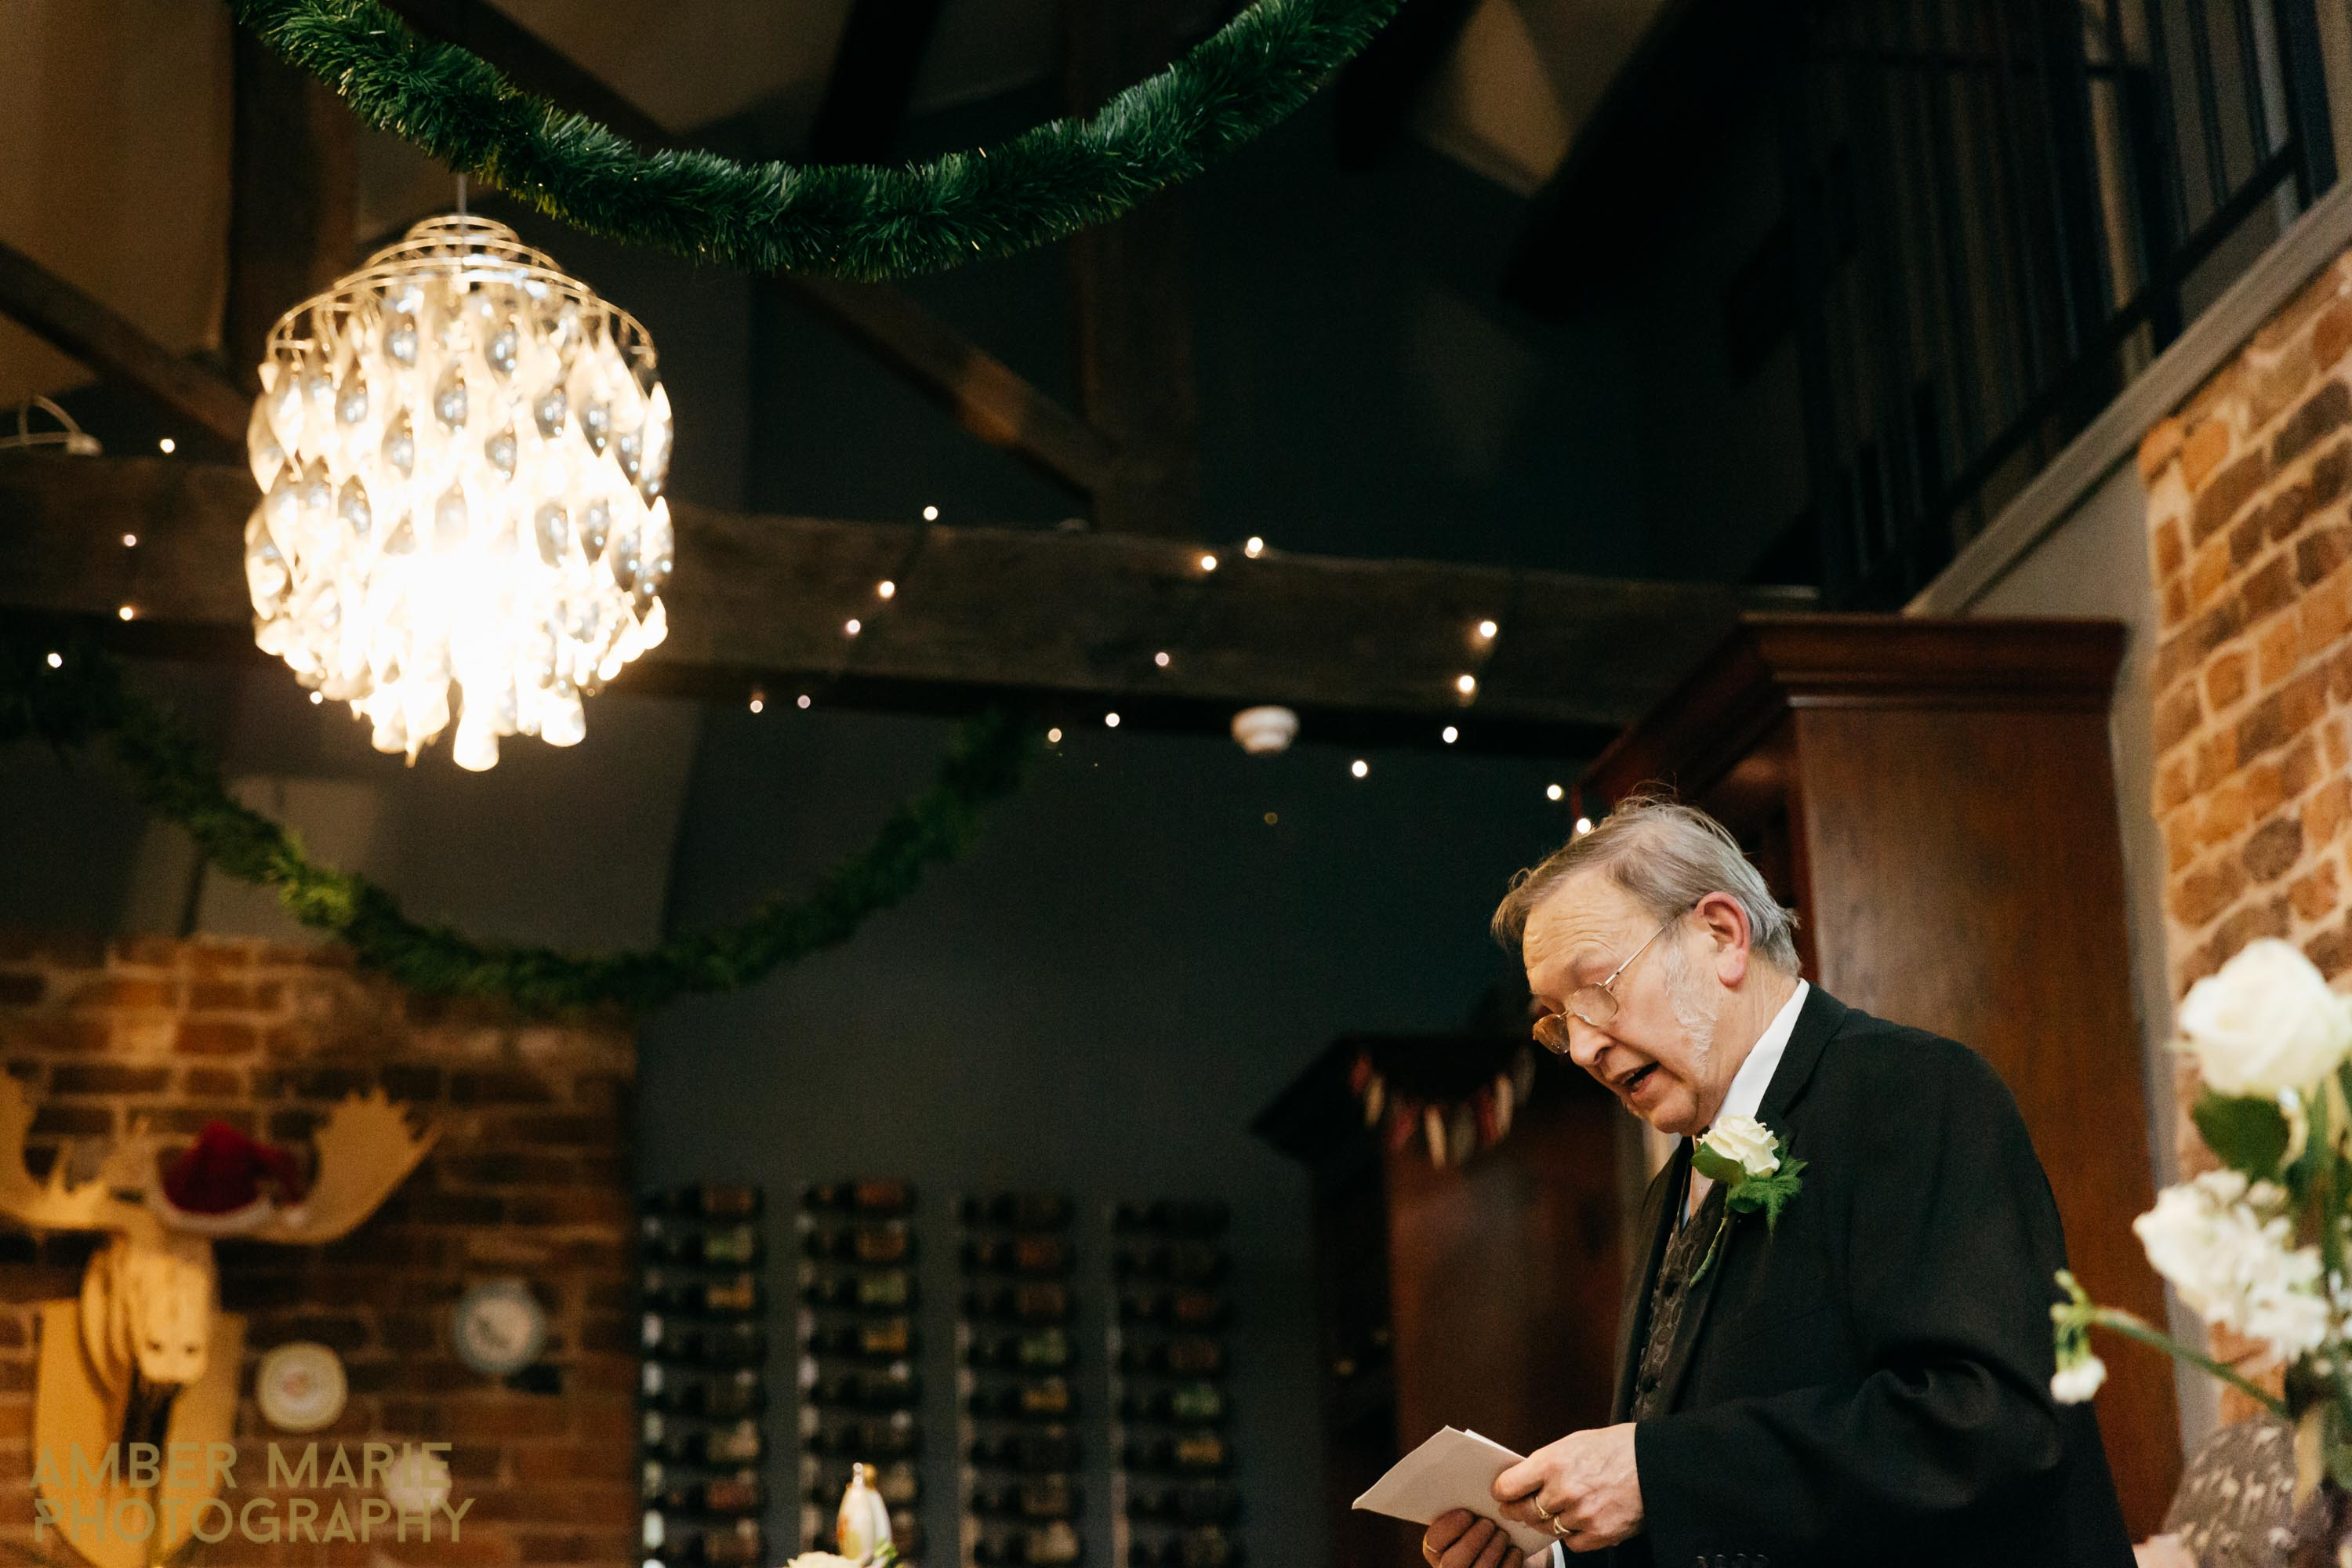 Leeds pub wedding photography